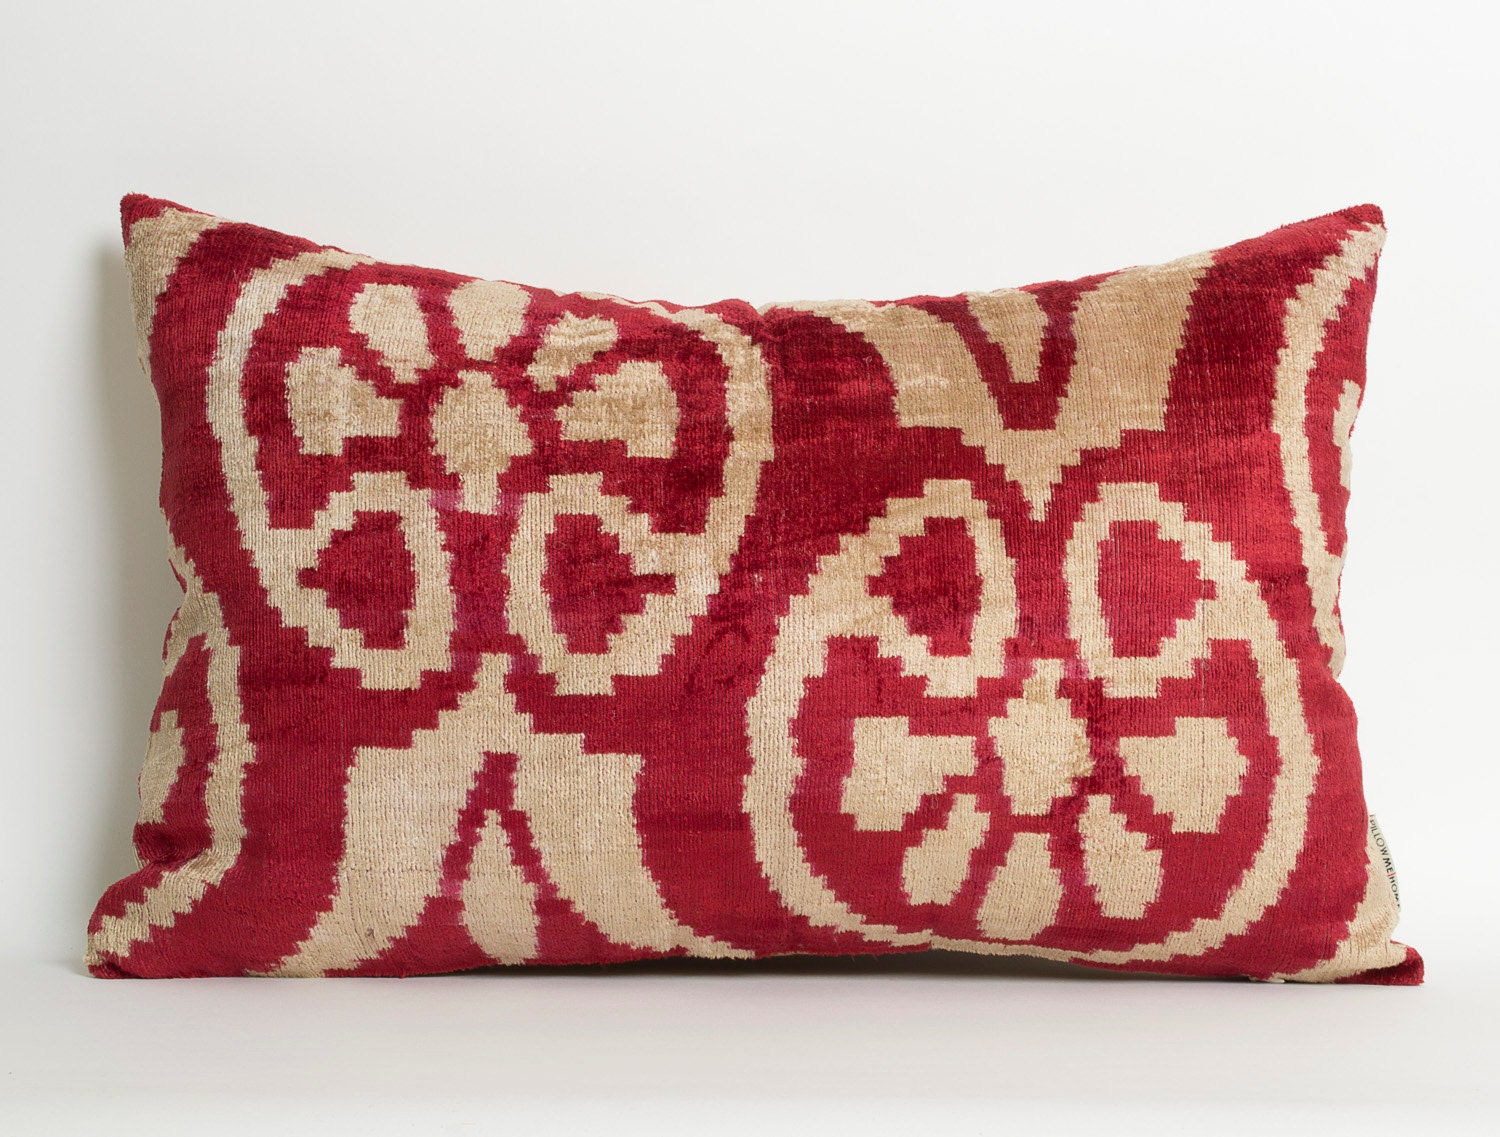 Ikat Throw Pillow Covers : Ikat Pillow Covers Maroon Red-Terra Cotta Accent Pillow